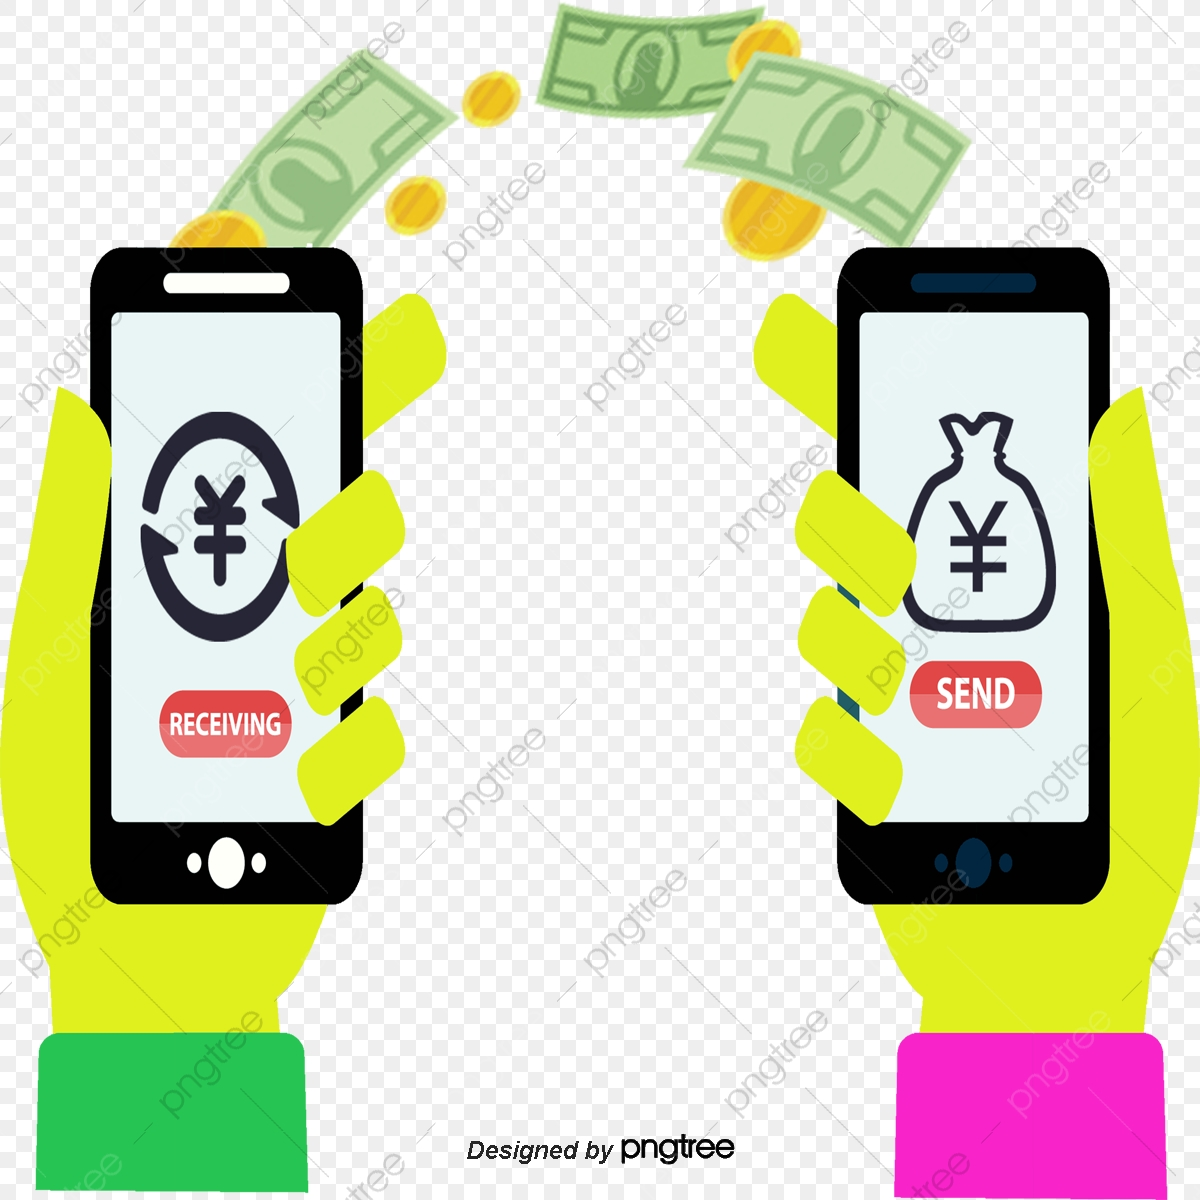 Mobile Account Transfer, Mobile Vector, Vector Material